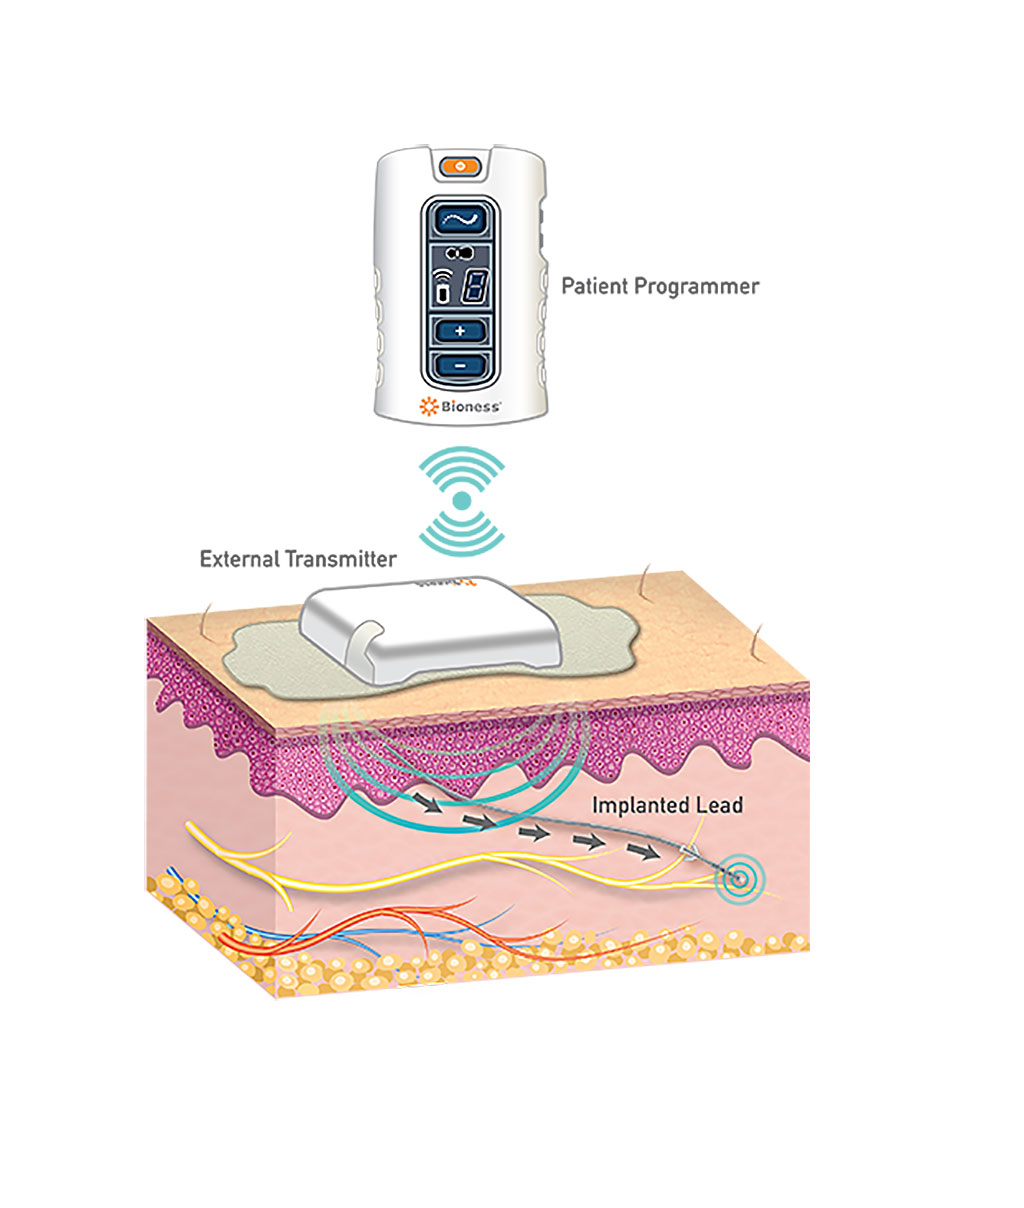 Image: The StimRouter neuromodulation system (Photo courtesy of Bioness)